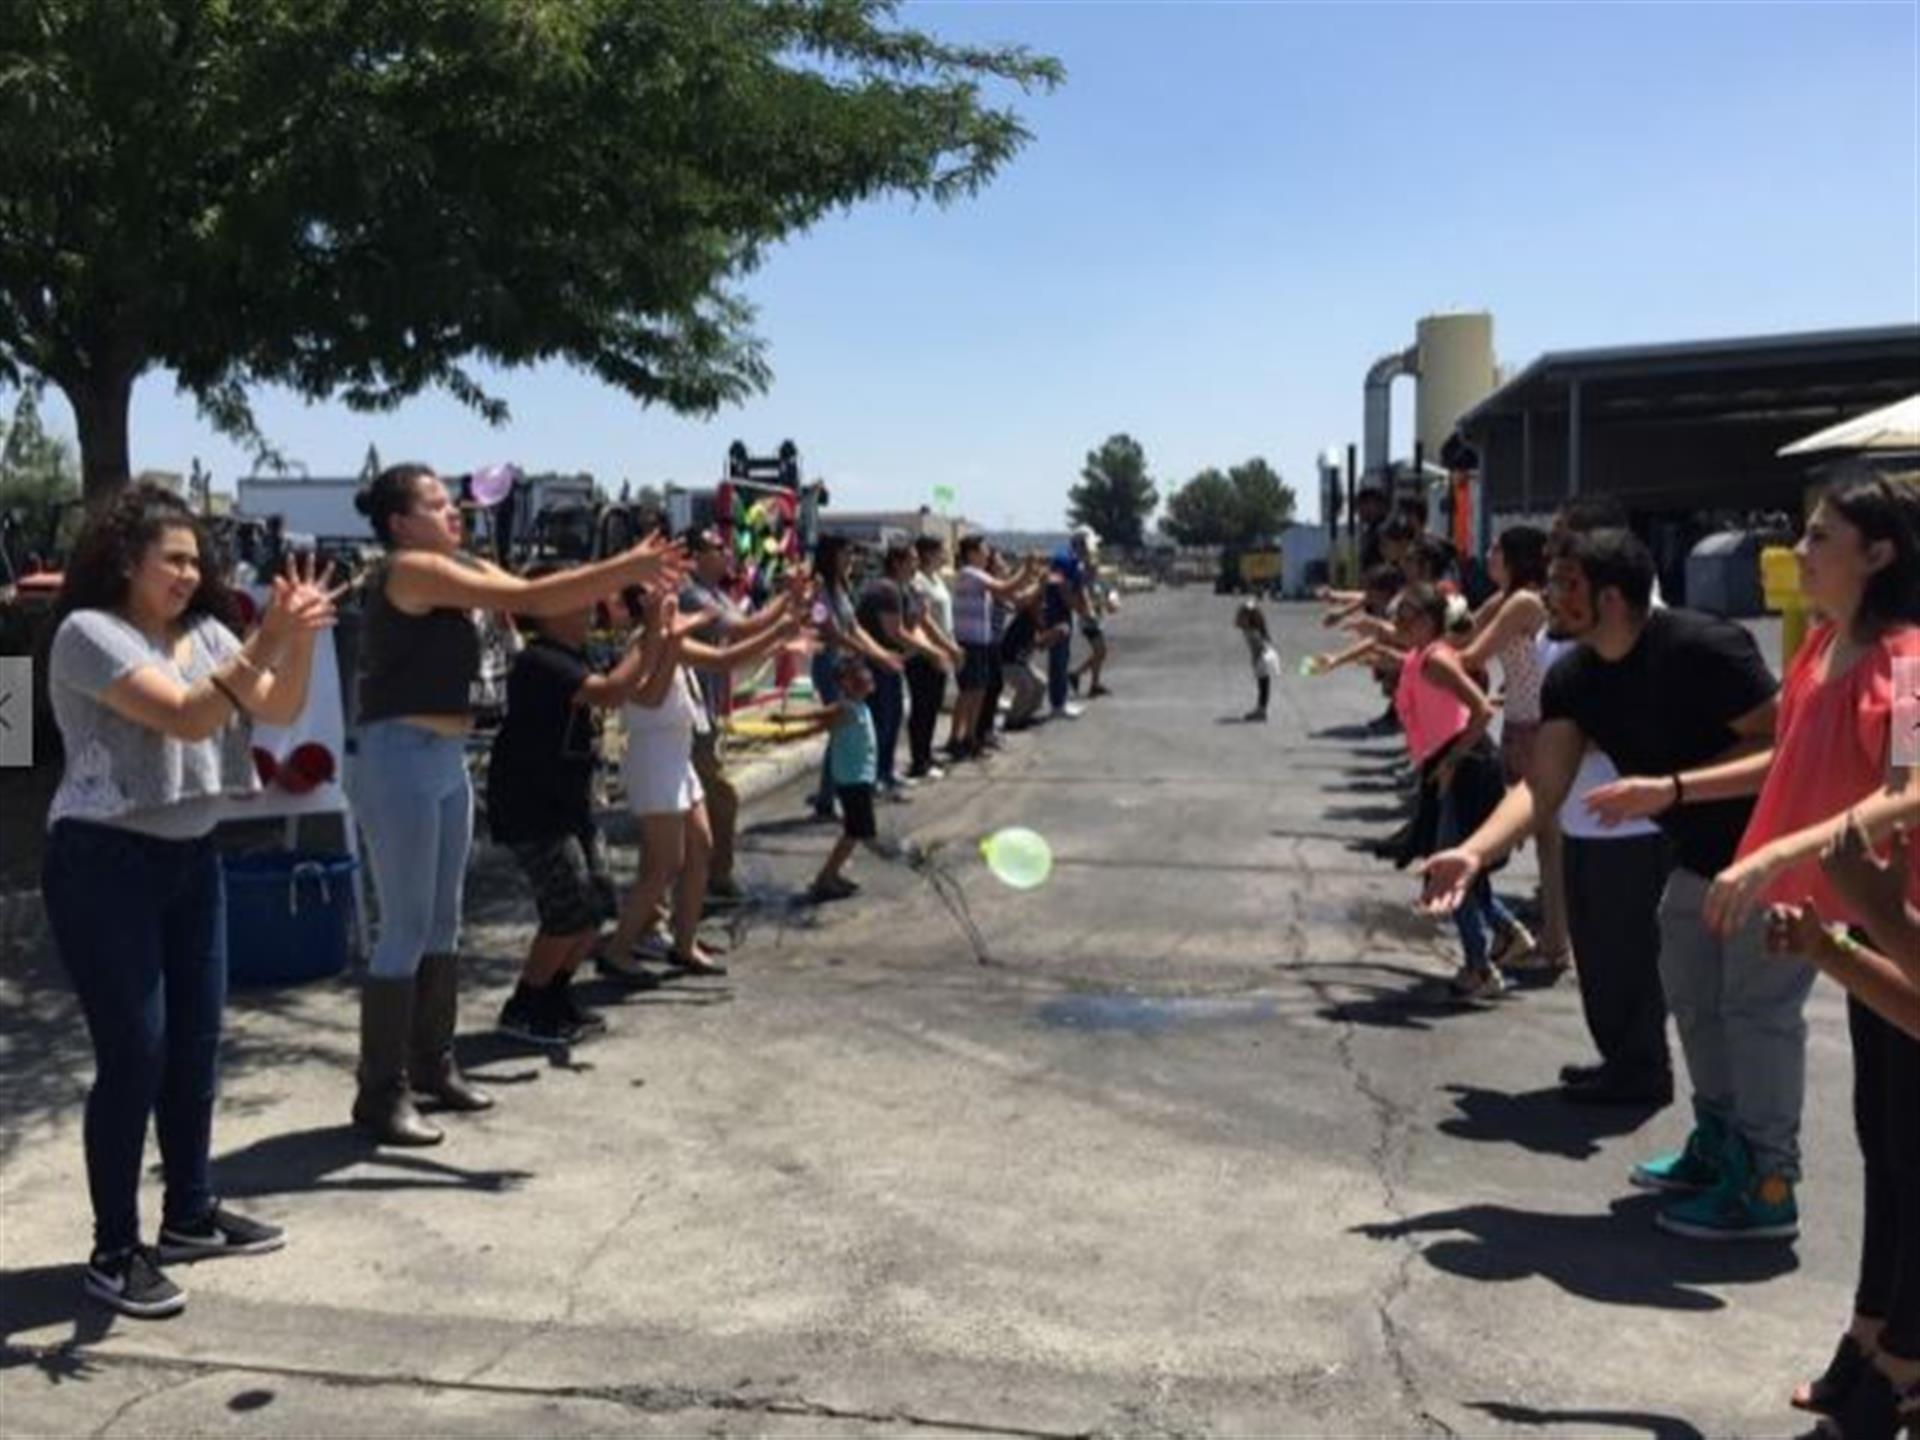 Children and teenagers playing balloon toss game